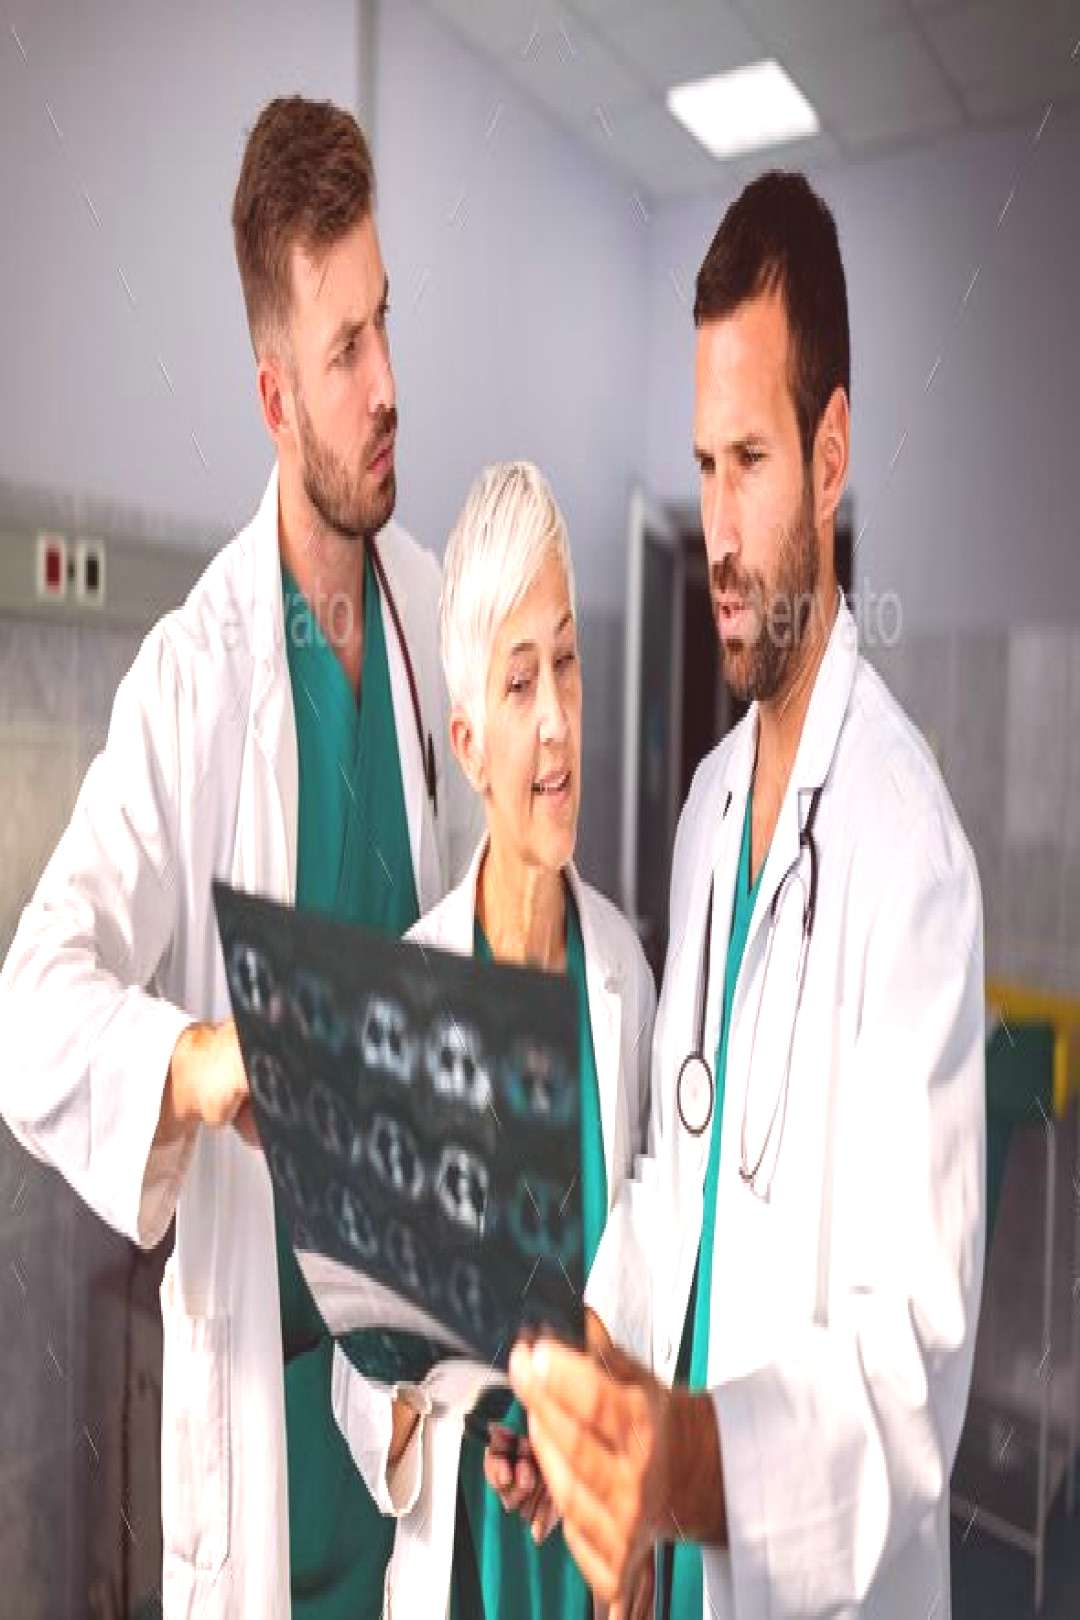 Doctors examining an x-ray report in hospital to make diagnosis by nd3000. Group of doctors examini